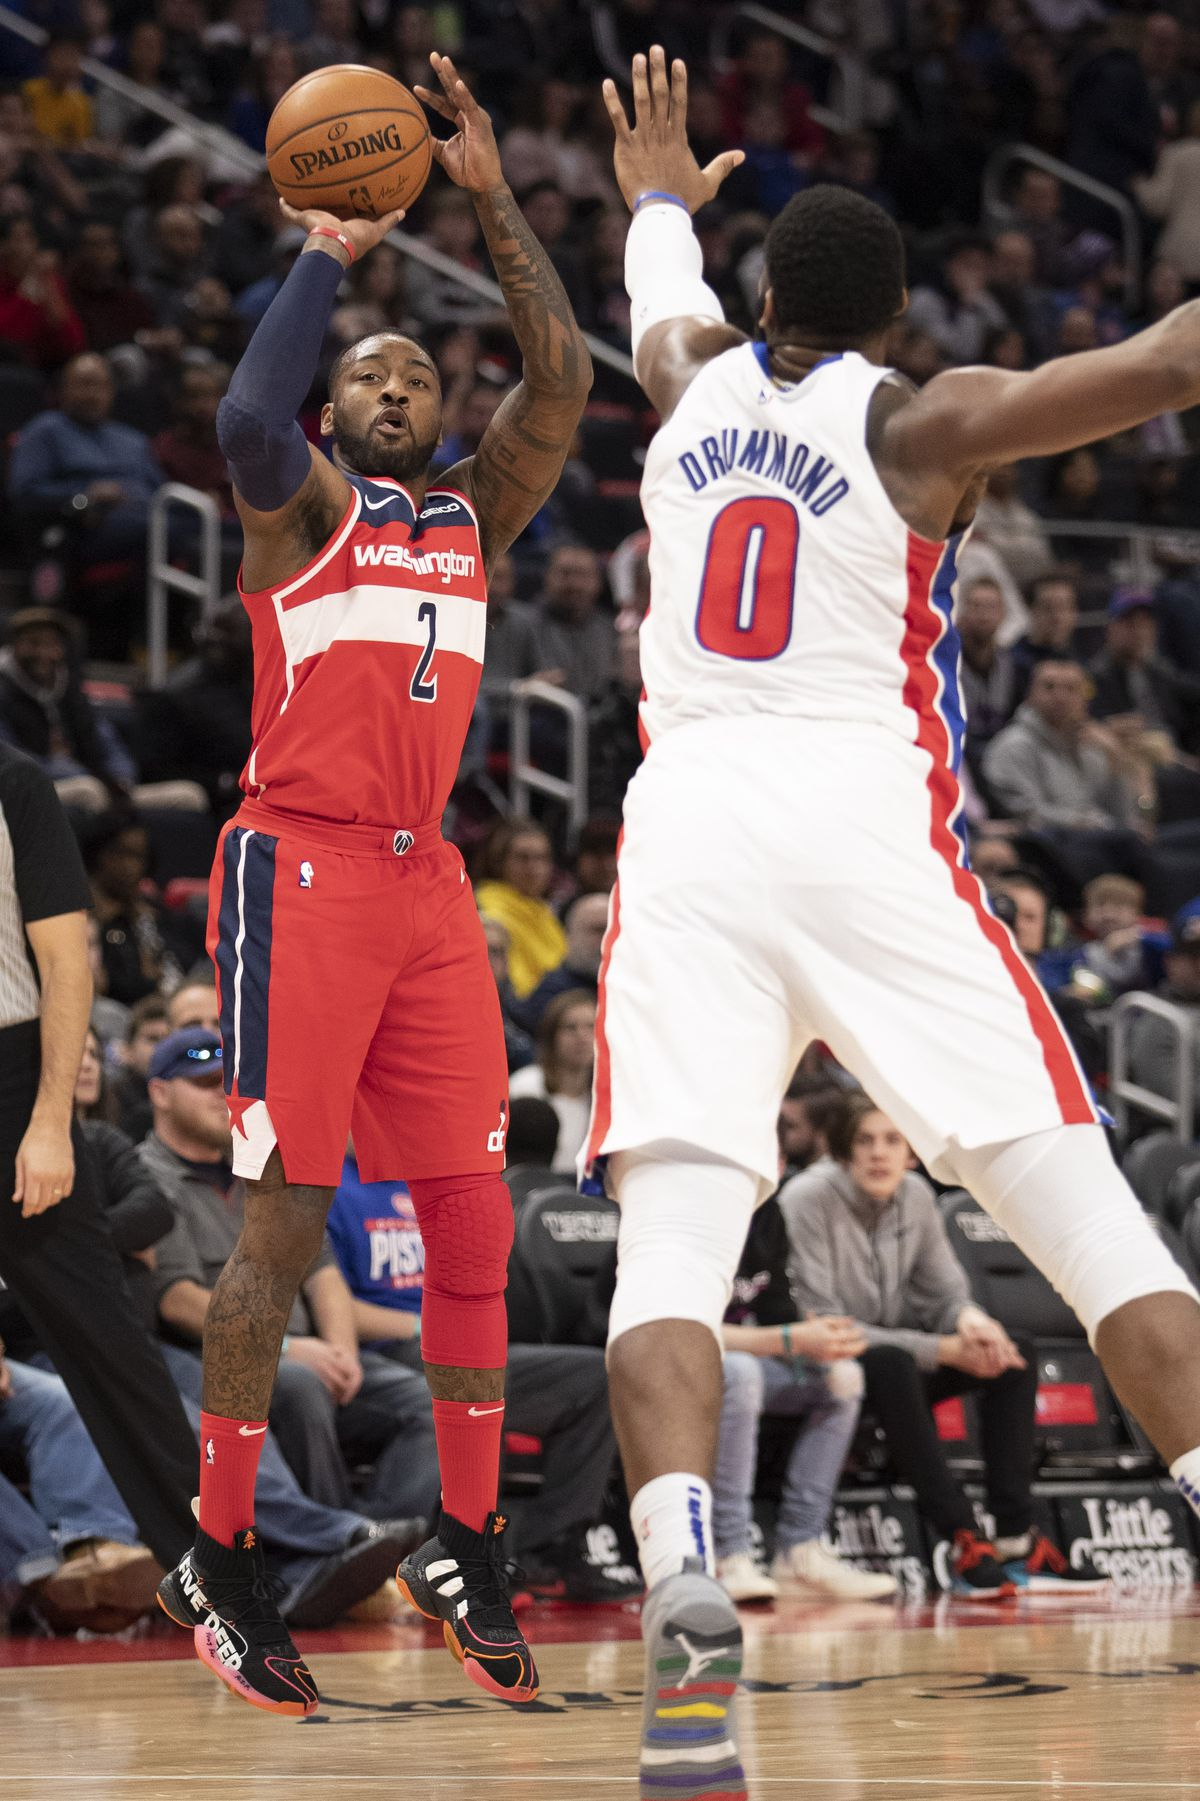 The Detroit Pistons should trade Andre Drummond - Detroit Bad Boys